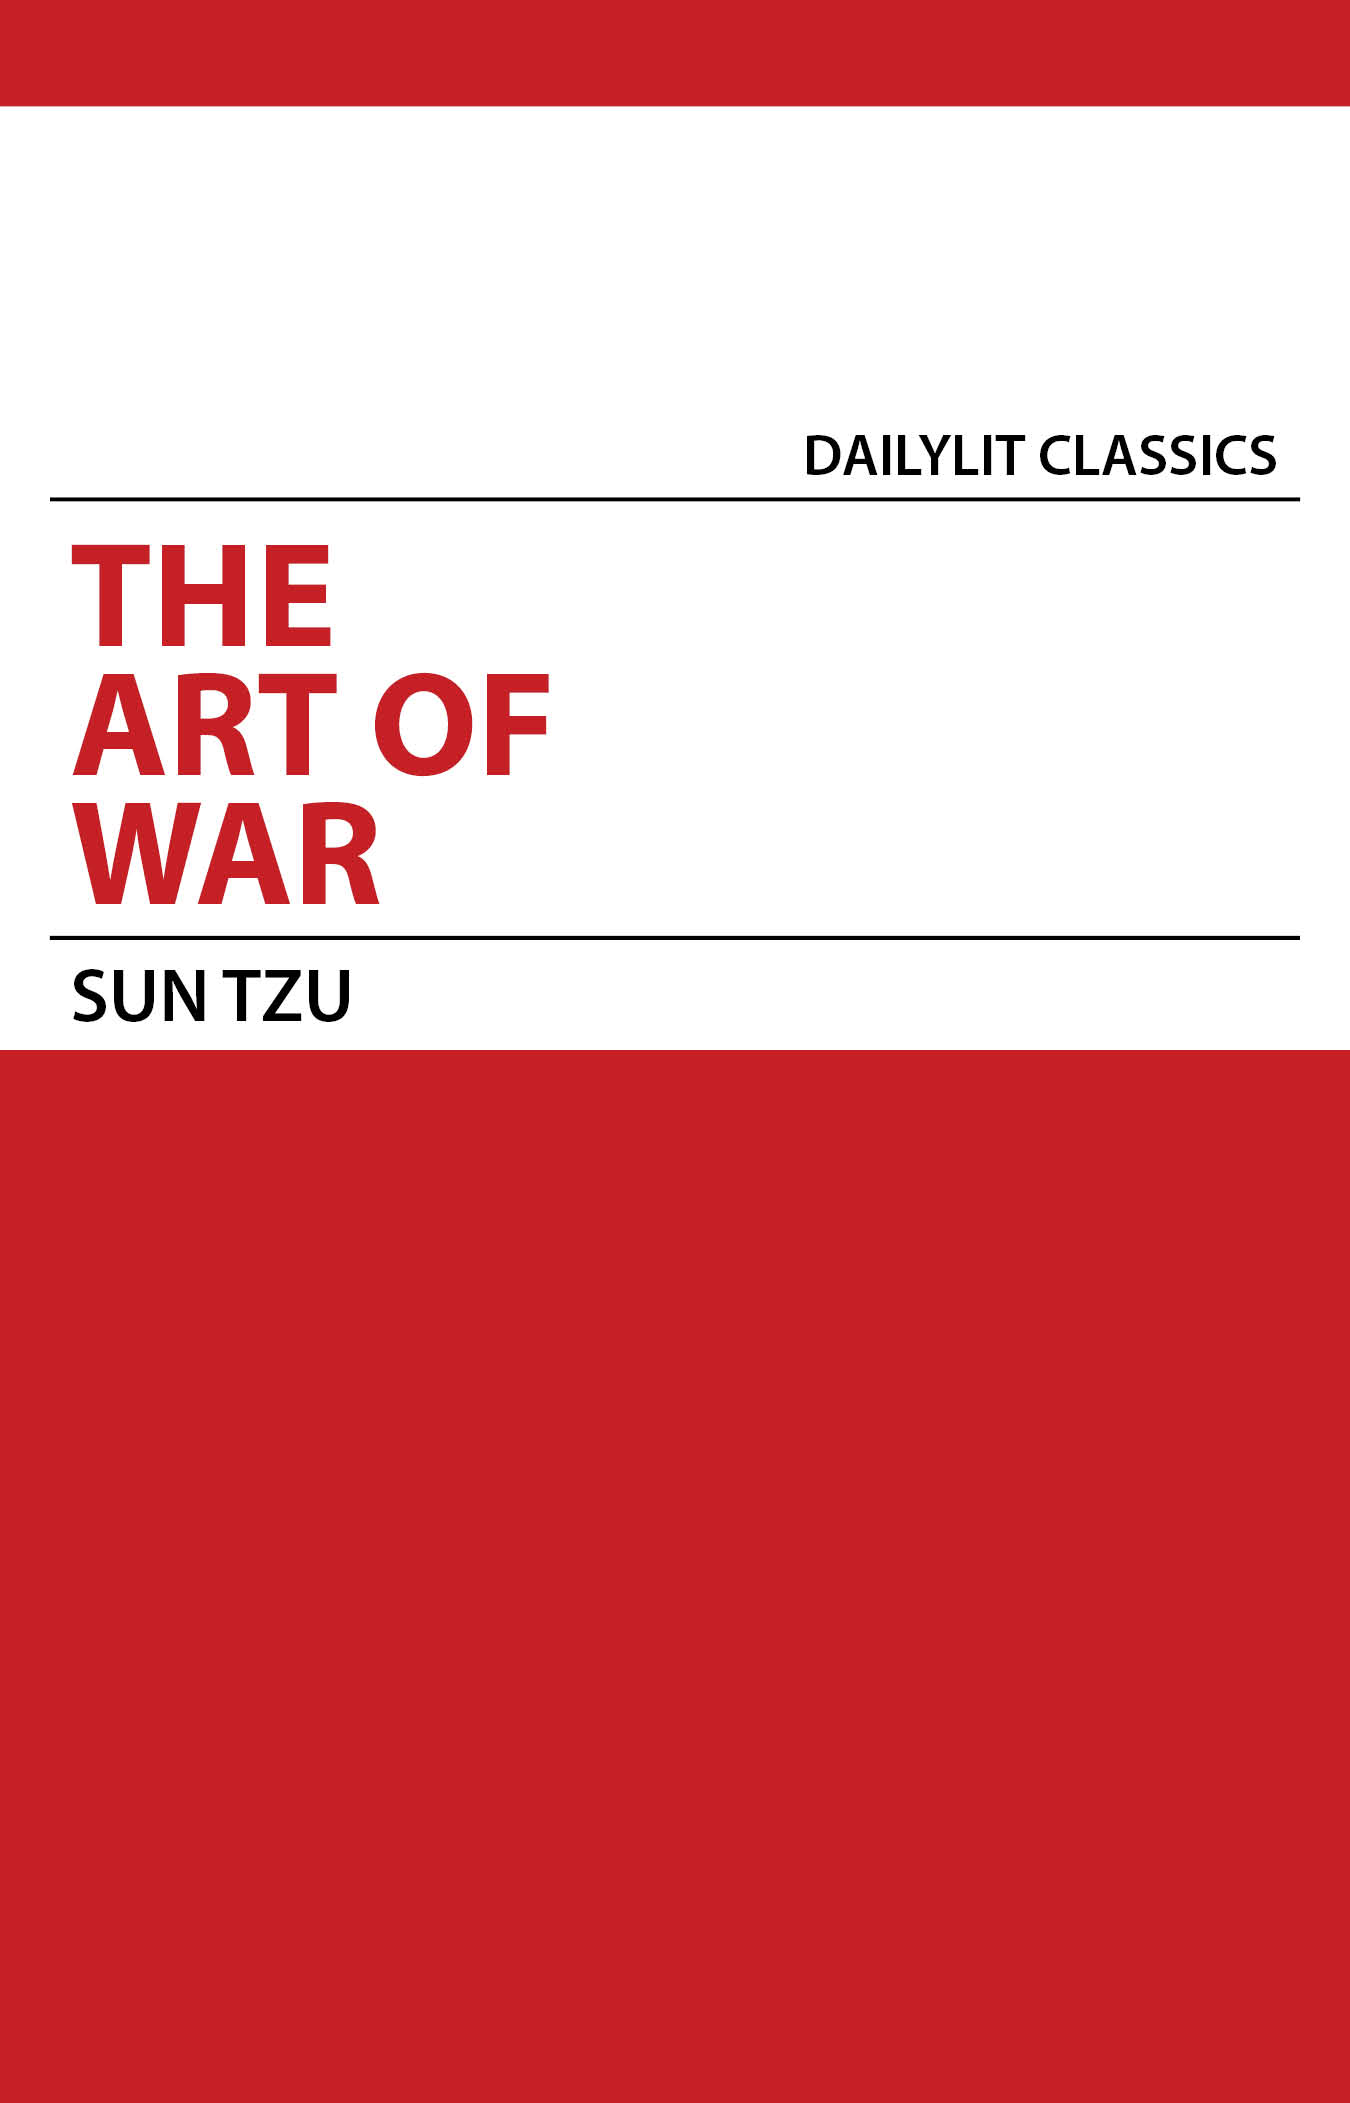 a review of the book the art of war by sun tzu (another book by ralph sawyer, the complete art of war, has both sun tzu's and sun pin's art of war, but without his in-depth analysis of sun tzu) [ buy this book ] griffith.